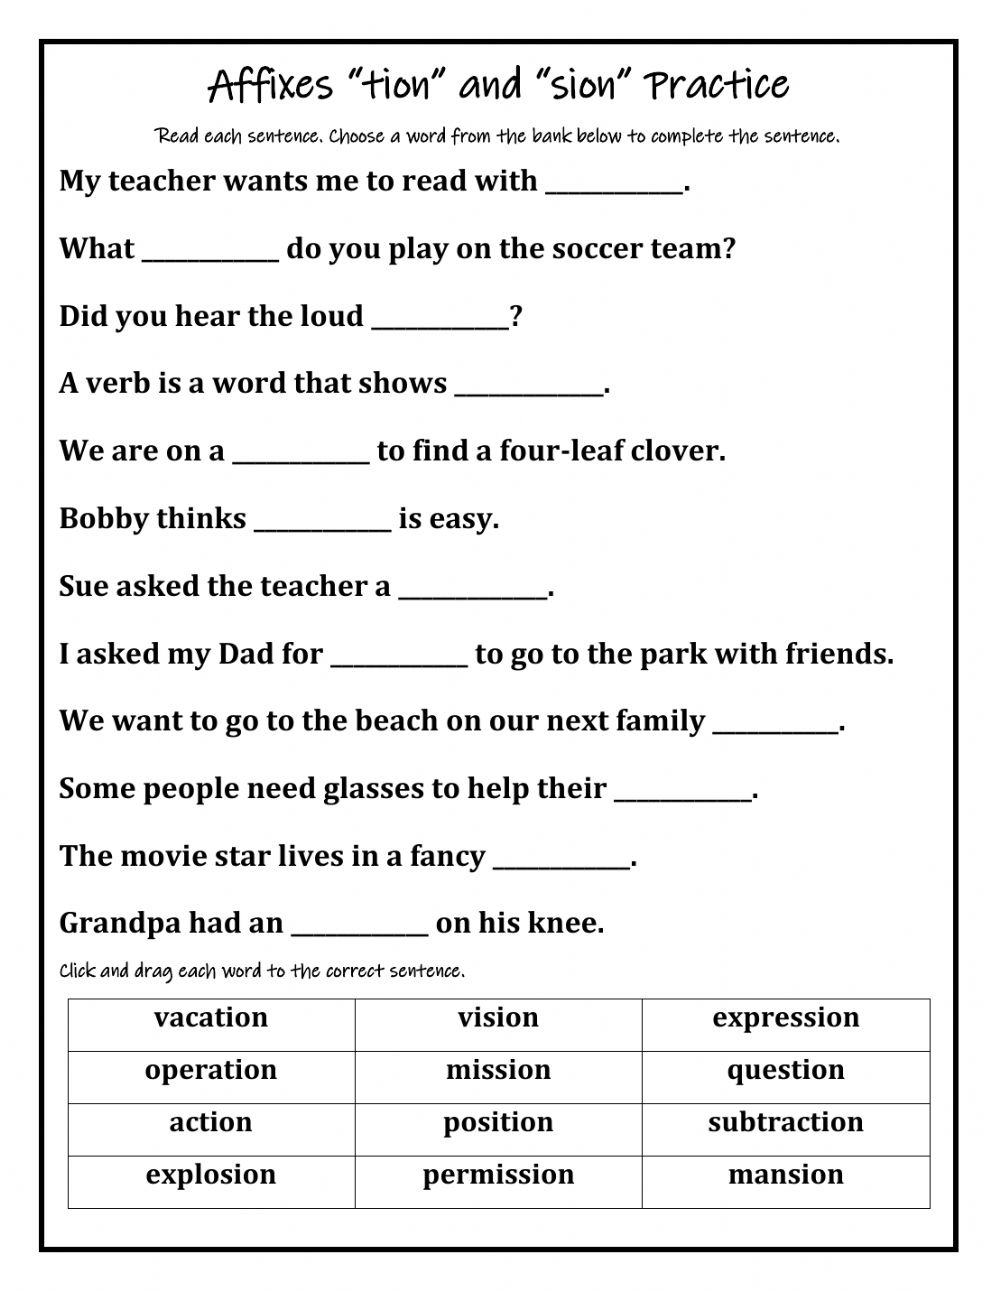 hight resolution of Affixes tion-sion worksheet